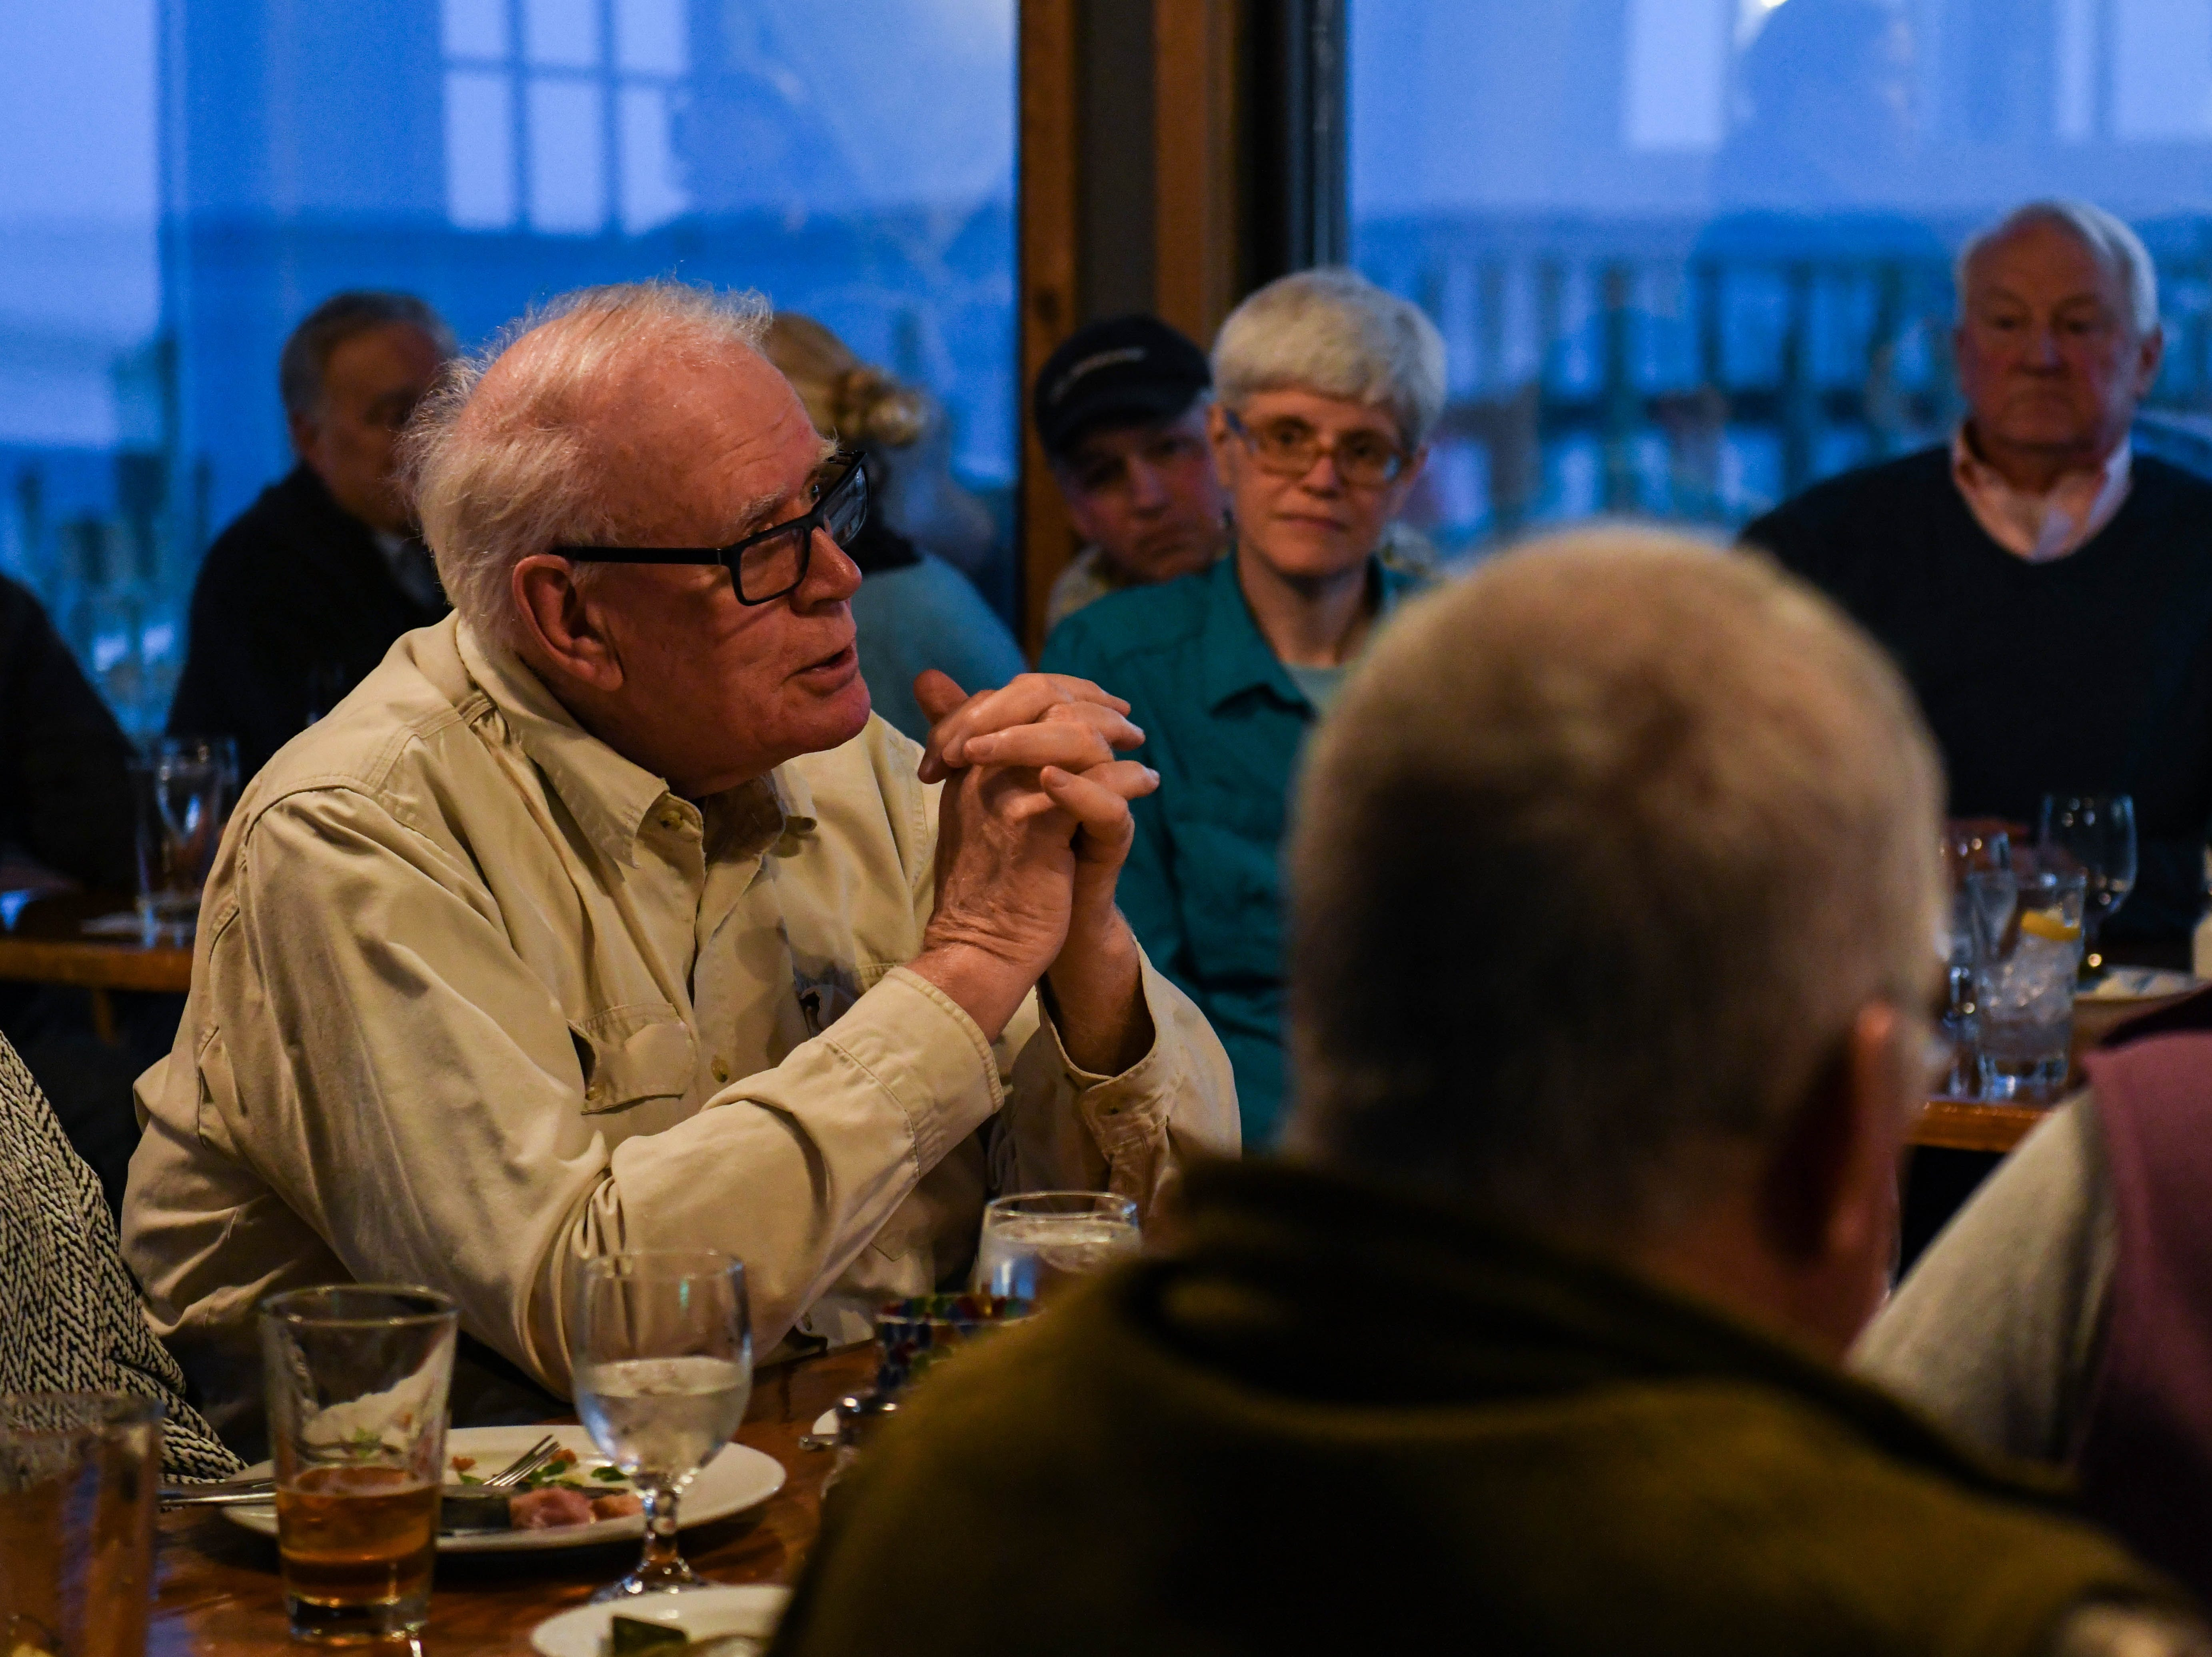 George Rieger, local resident, speaks at a community discussion in Wachapreague, Virginia on flooding and sea level rise led by the Nature Conservancy on Monday, March 4, 2019.